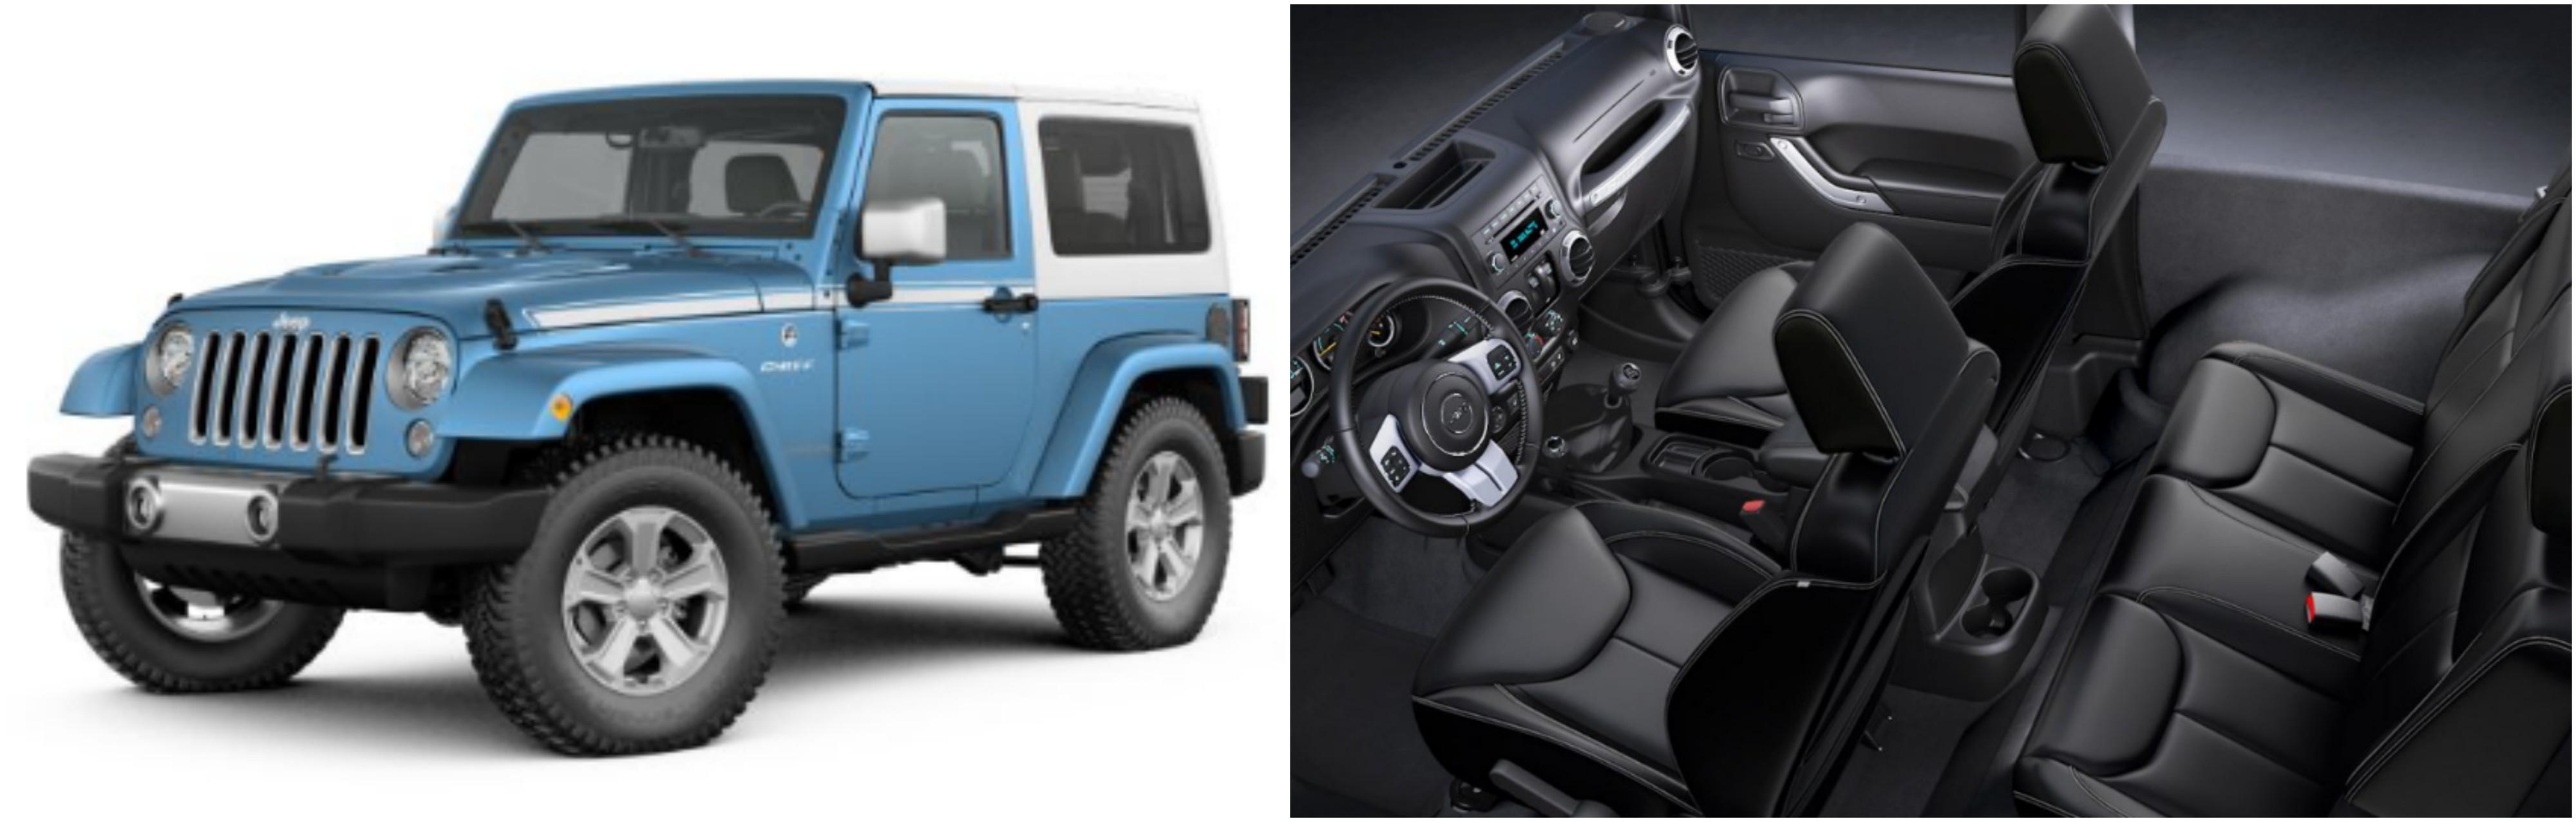 Jeep Wrangler Jk Special Edition Models What Makes Them